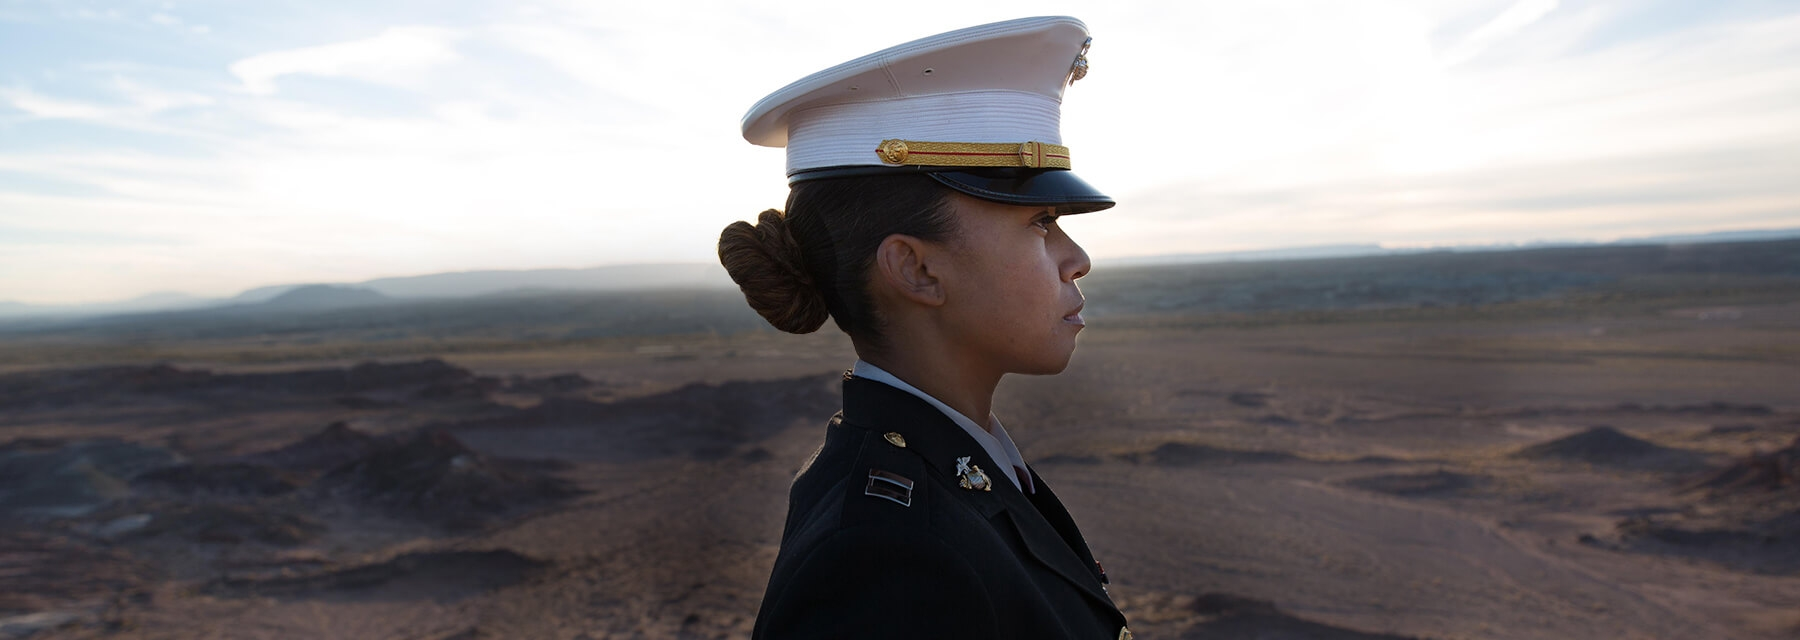 Captain Ashley McMillan looks across the Arizona desert as the sun sets in the background.